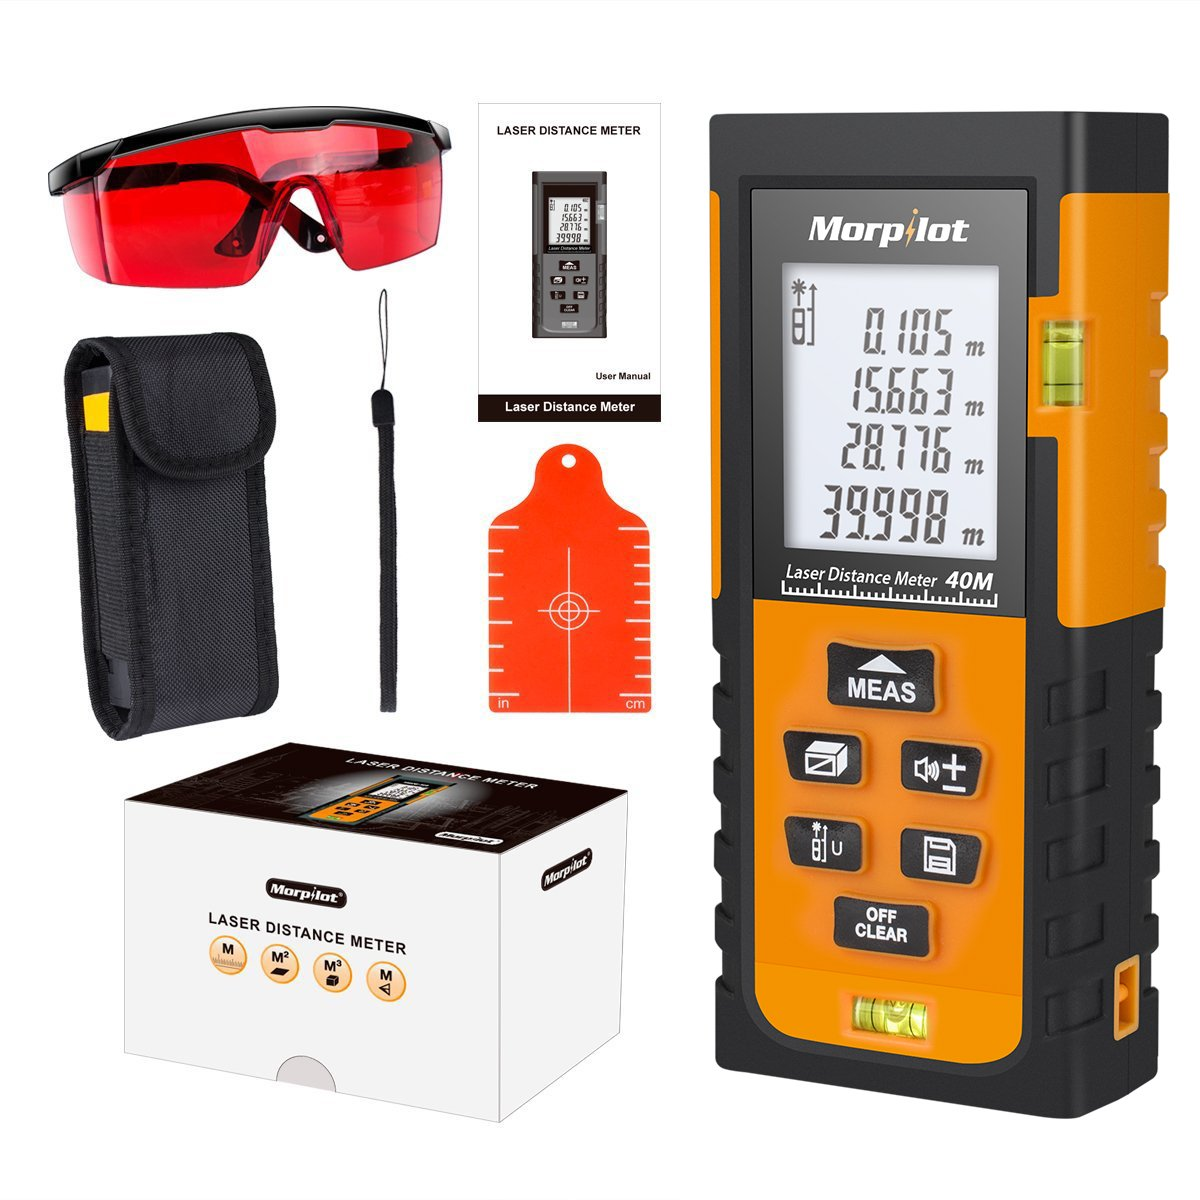 Laser Distance Meter,Morpilot 40M Laser Measure with Target Plate & Enhancing Glasses,Laser Measuring Device with Pythagorean Mode, Measure Distance, Area, Volume Calculation - Black & Orange